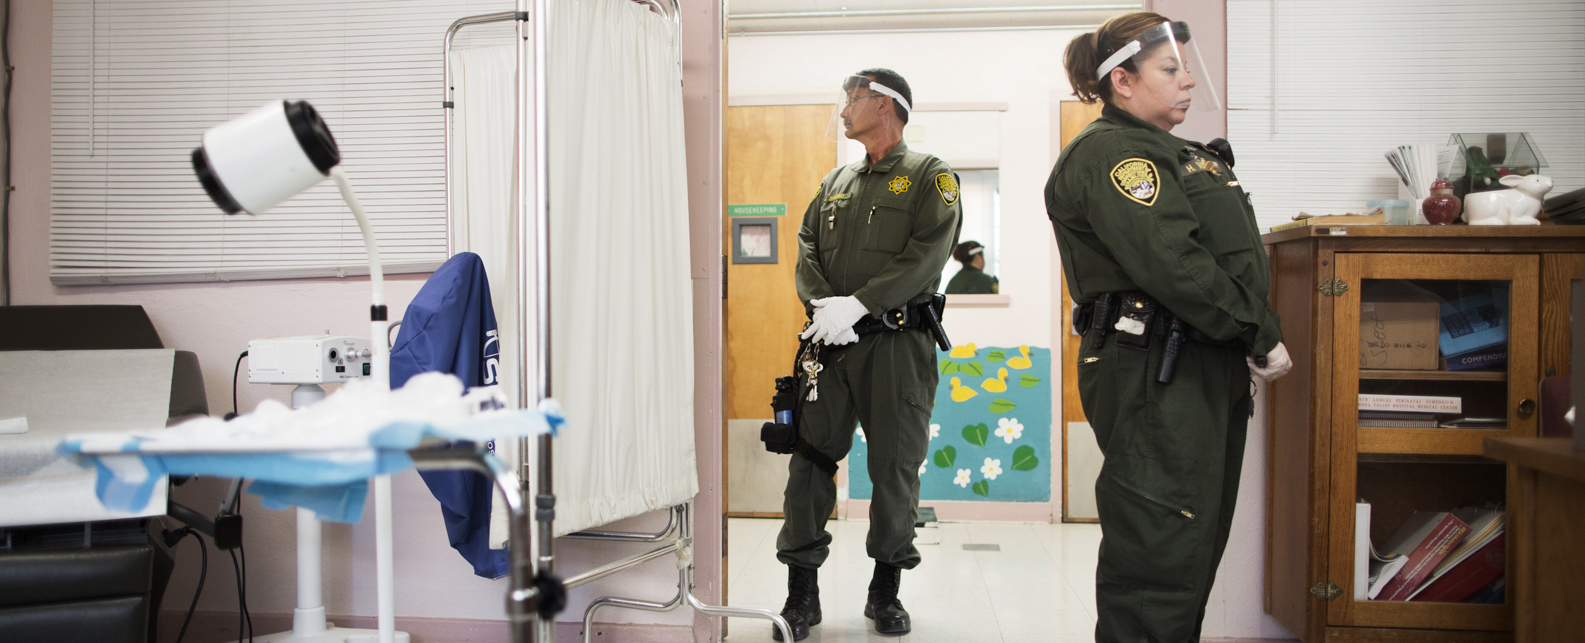 Prison guards escort an inmate held in the Administrative Segregation unit to her appointment with the prison's OB/GYN.